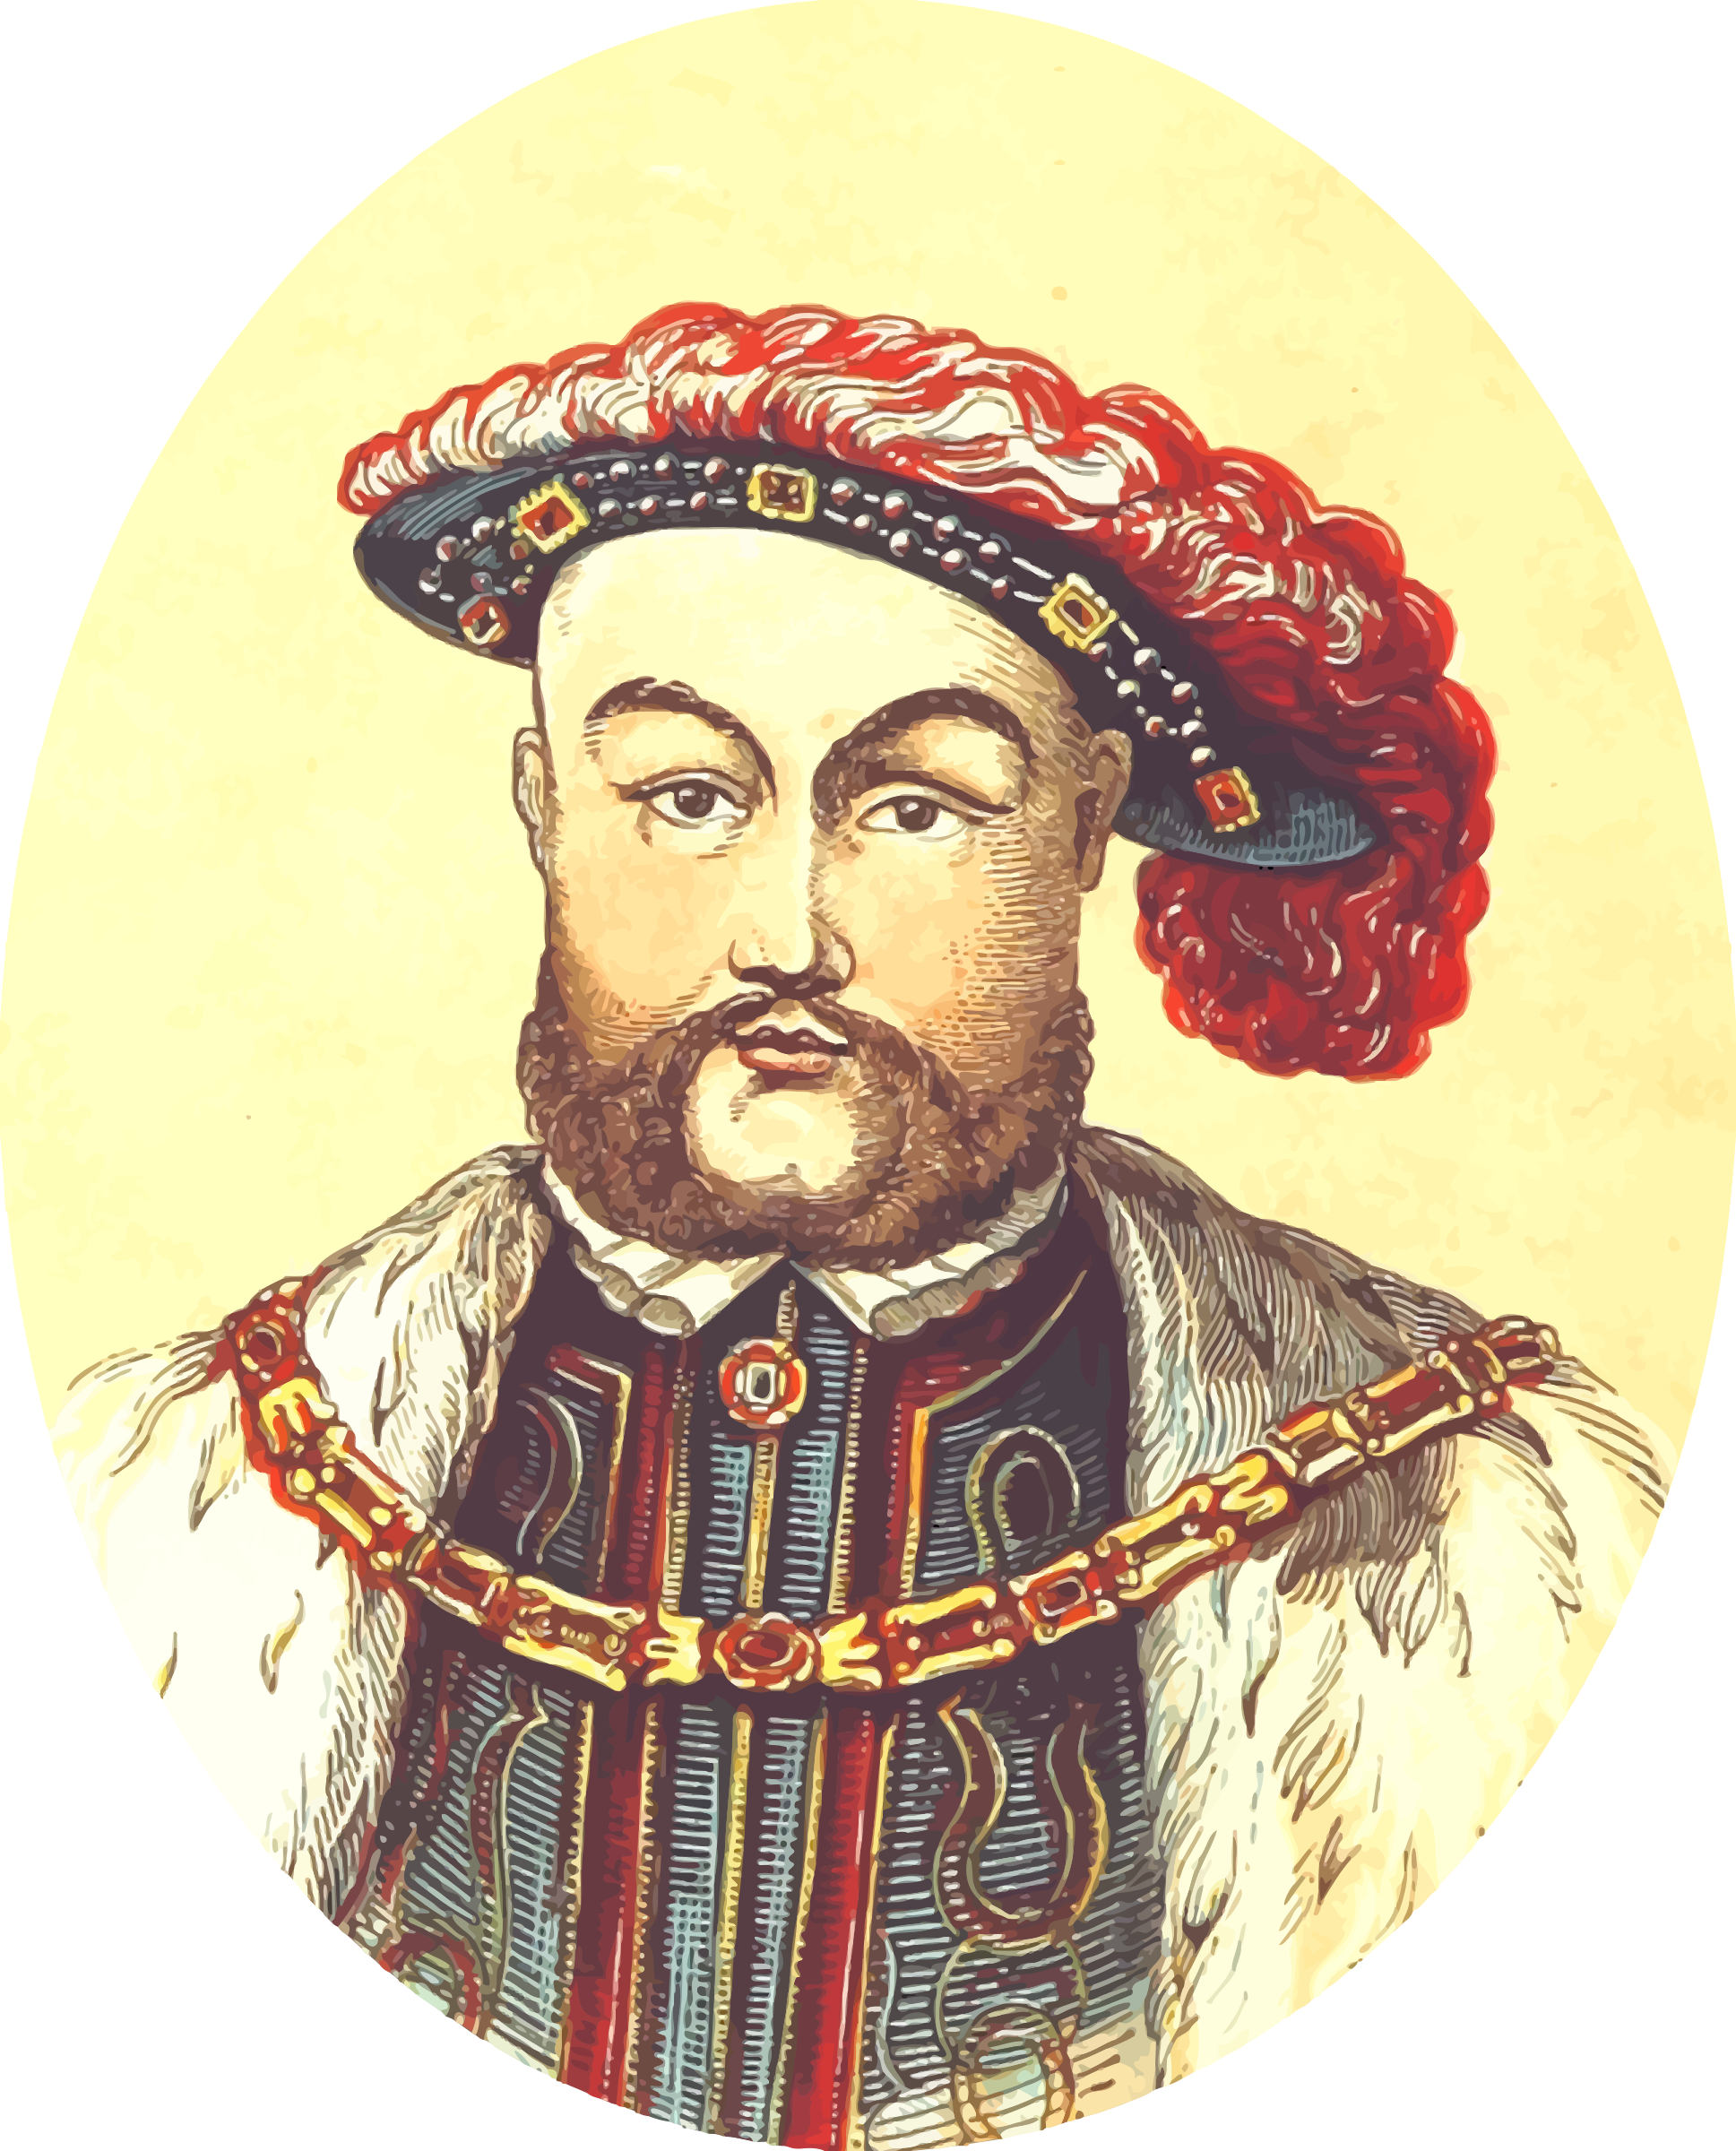 King Henry VIII (version 2) by Firkin